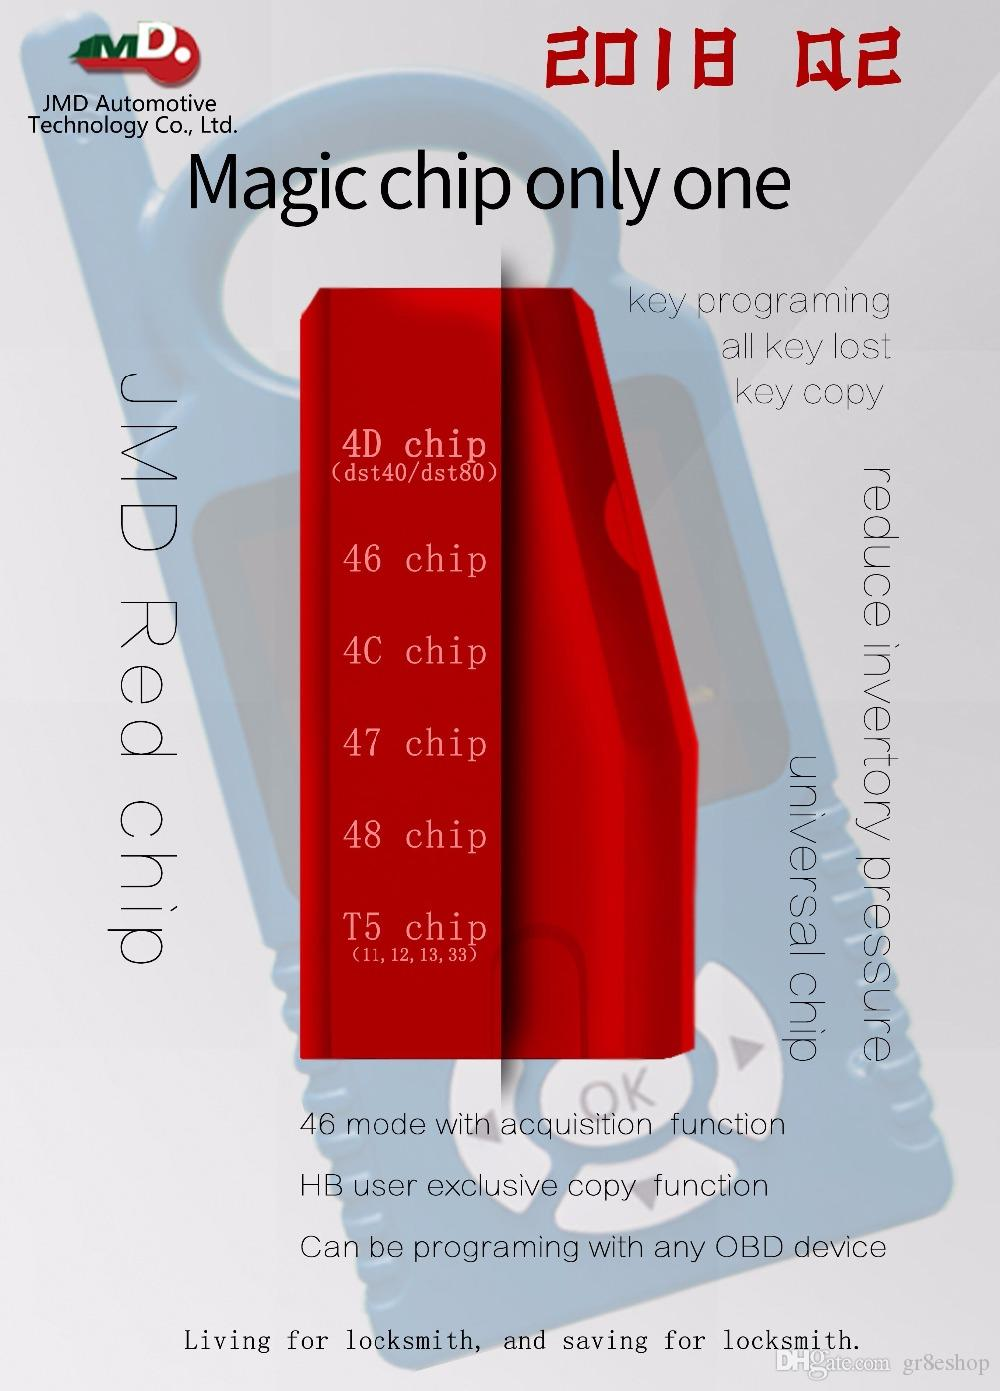 Los chips universales Handy Baby Multifunción CBAY Super Red Chip reemplazan el chip JMD 46/47 / 4C / 4D / G / KING / 48 / T5